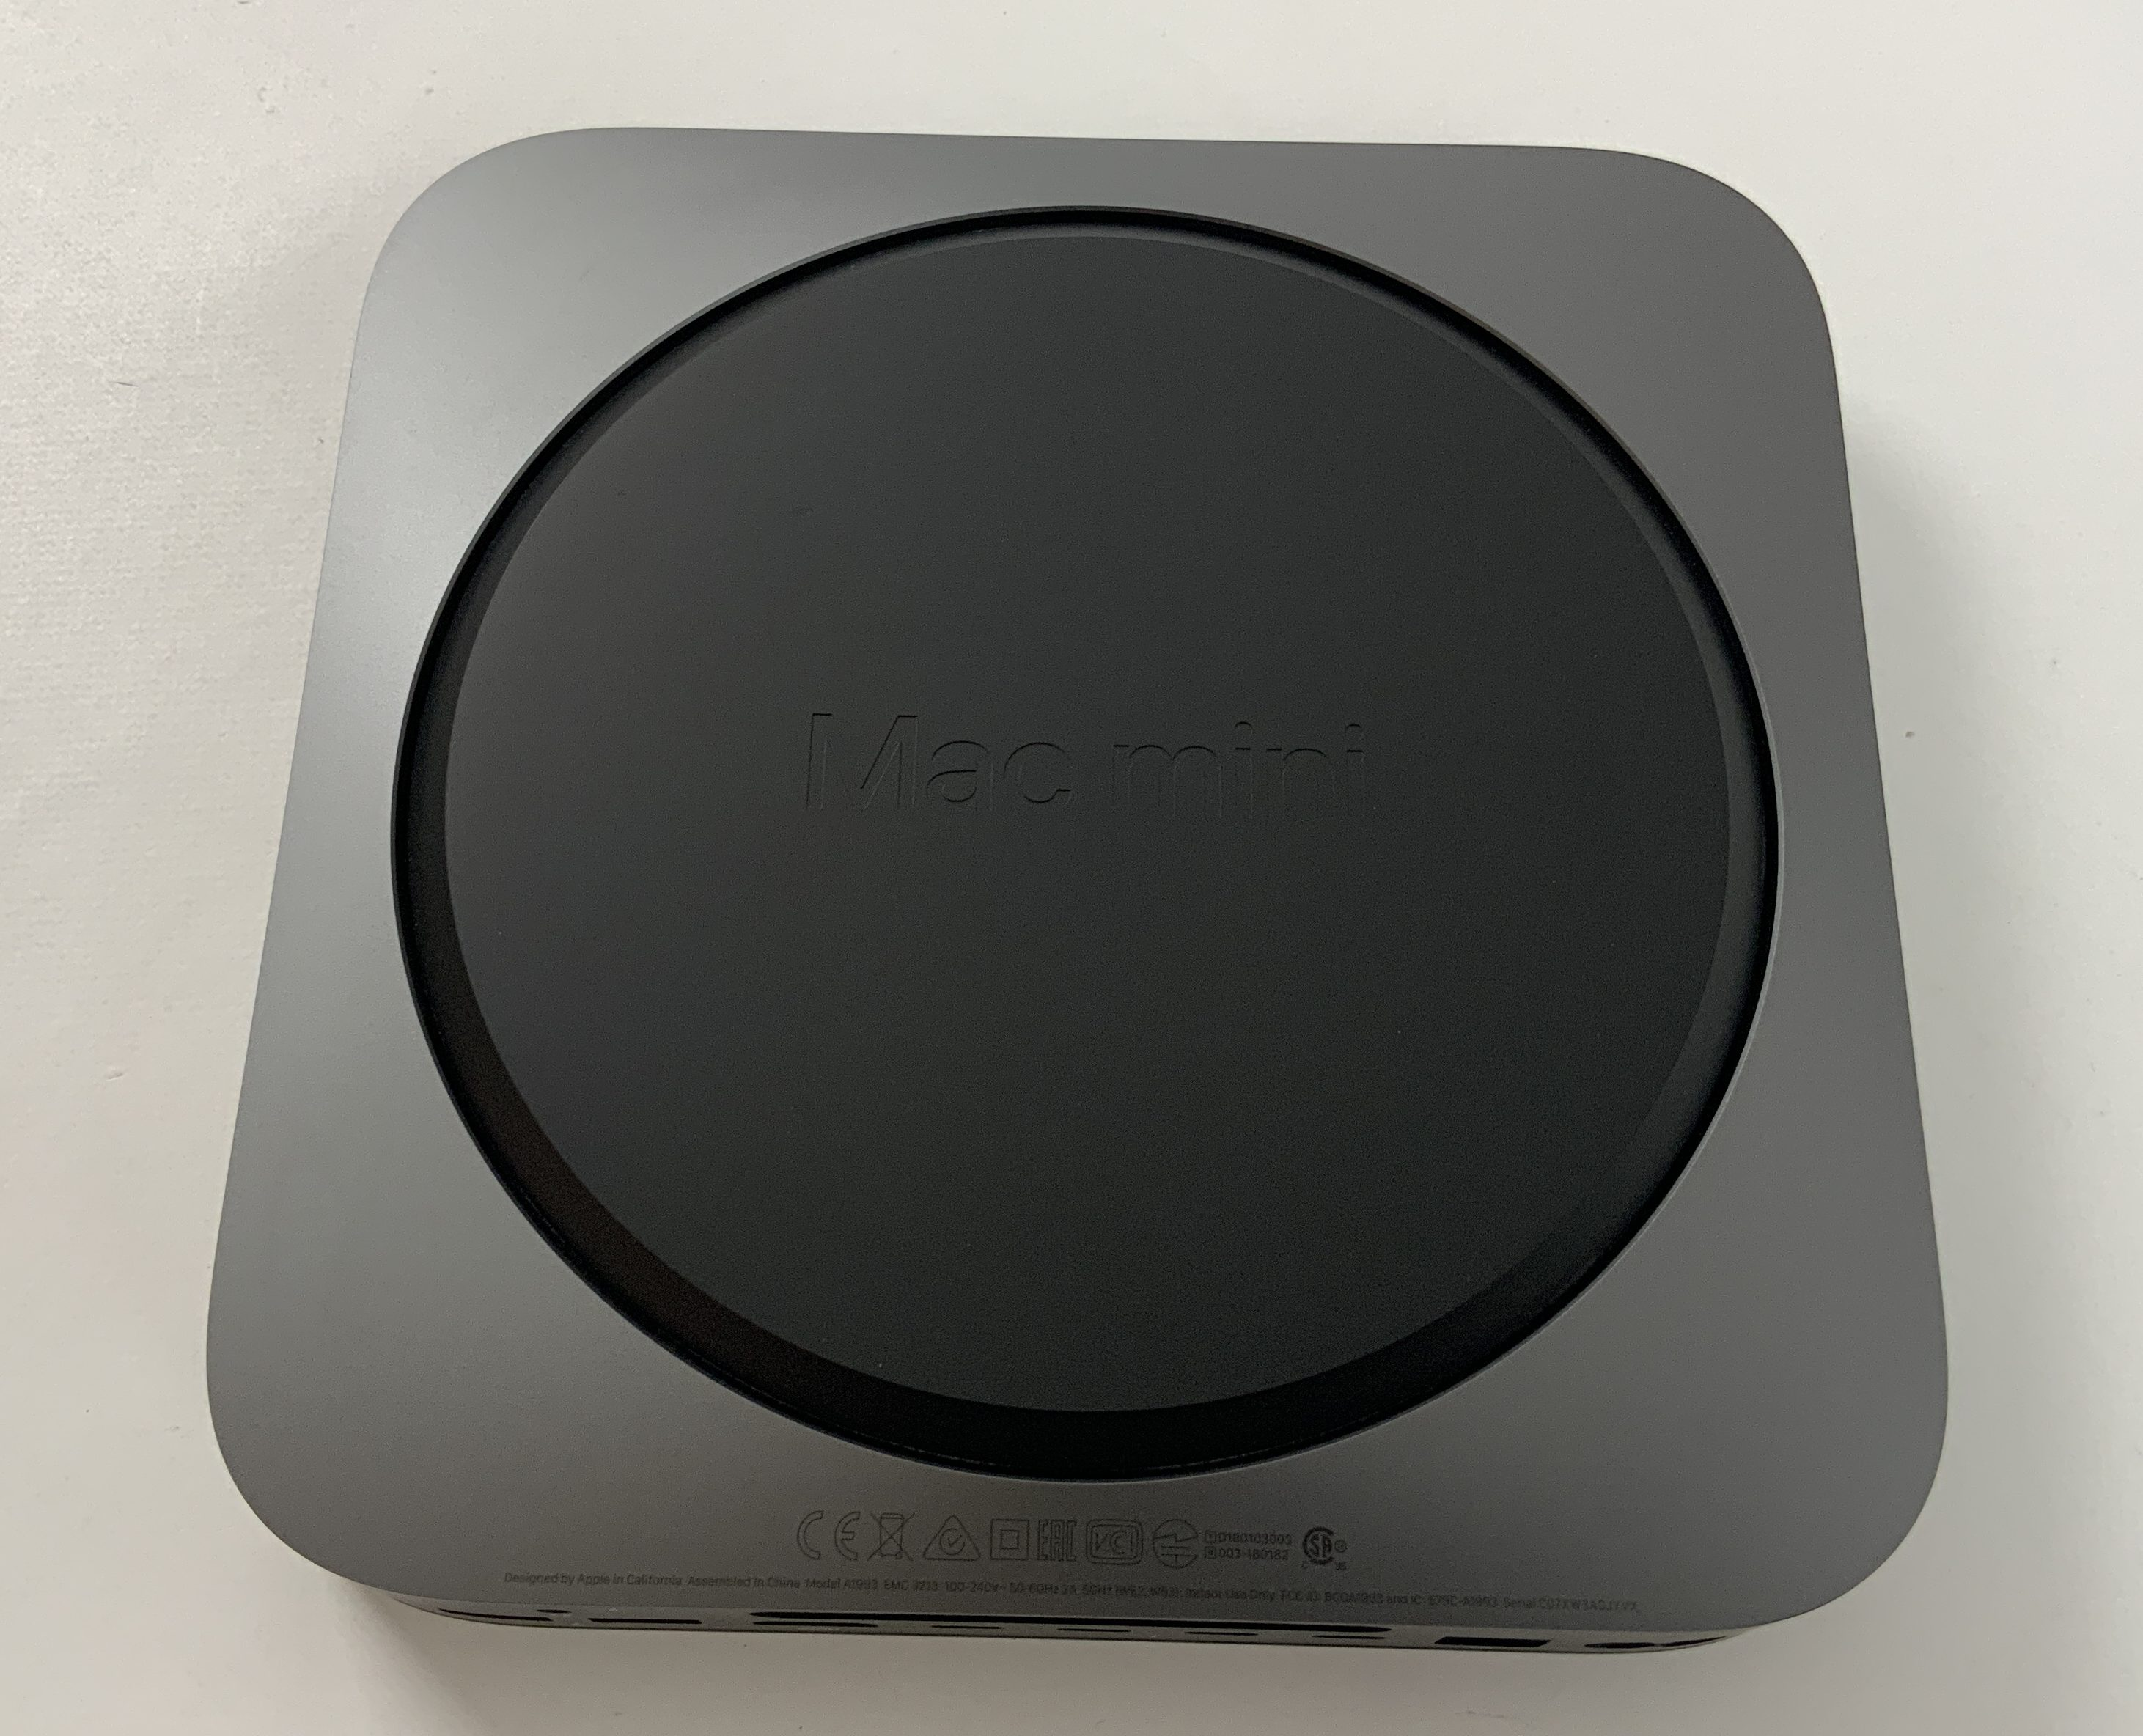 Mac Mini Late 2018 (Intel 6-Core i5 3.0 GHz 64 GB RAM 256 GB SSD), Intel 6-Core i5 3.0 GHz, 64 GB RAM, 256 GB SSD, imagen 2